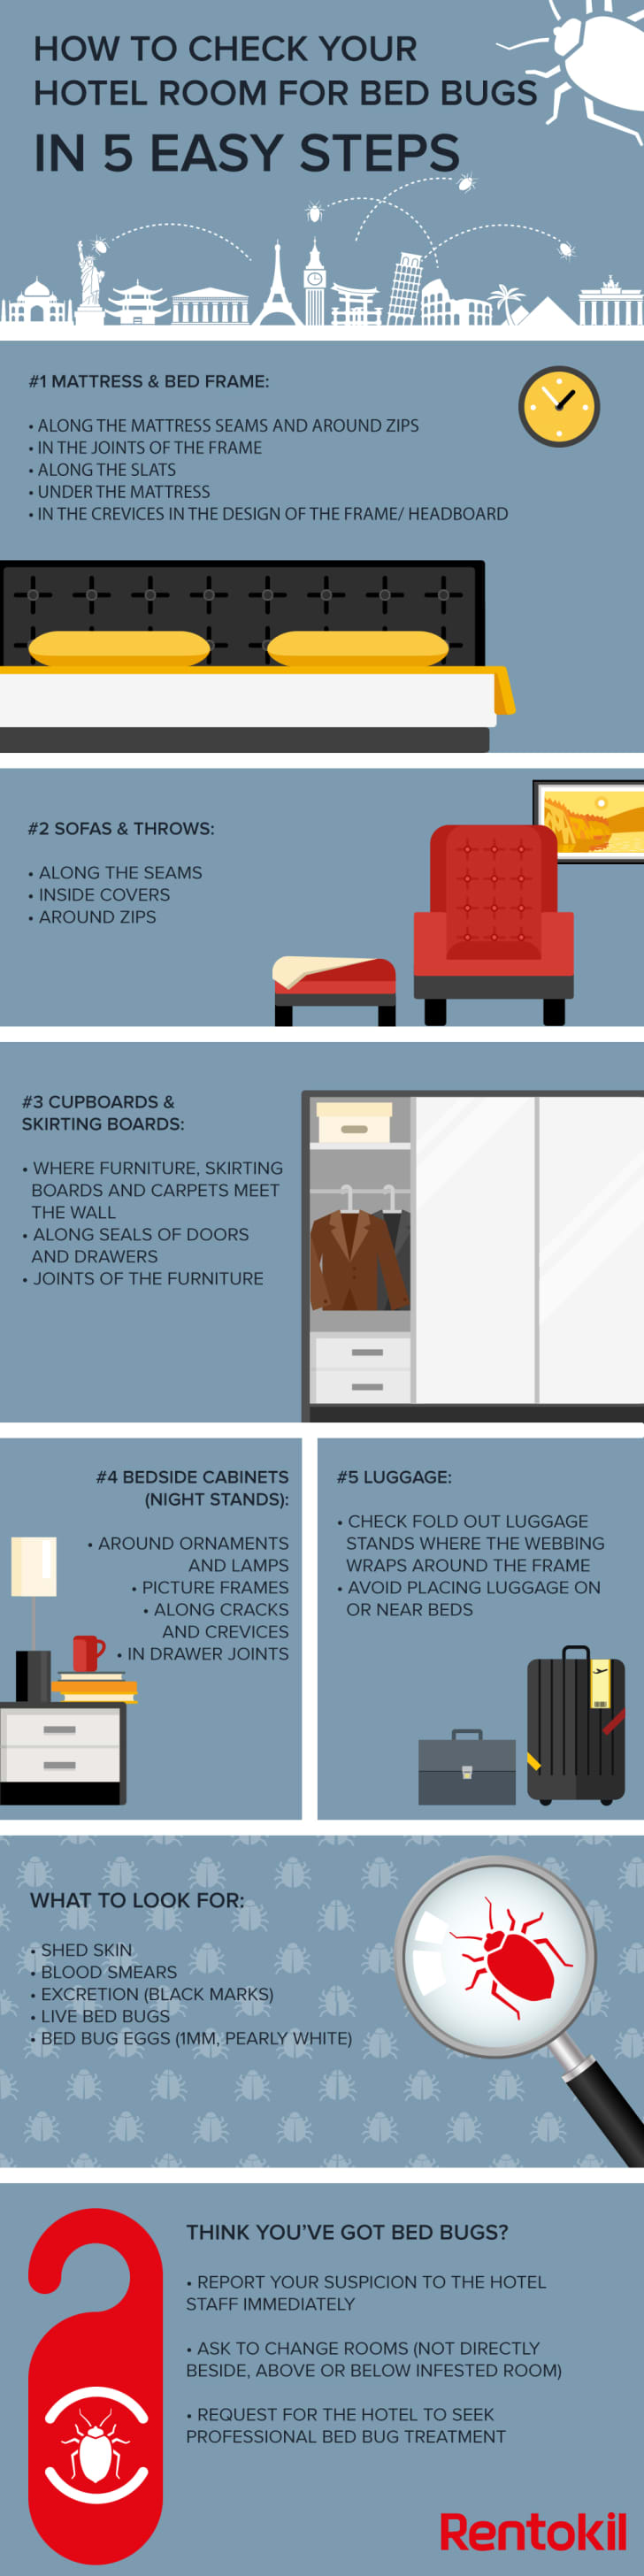 An illustrated infographic details five steps for checking your apartment for bedbugs.